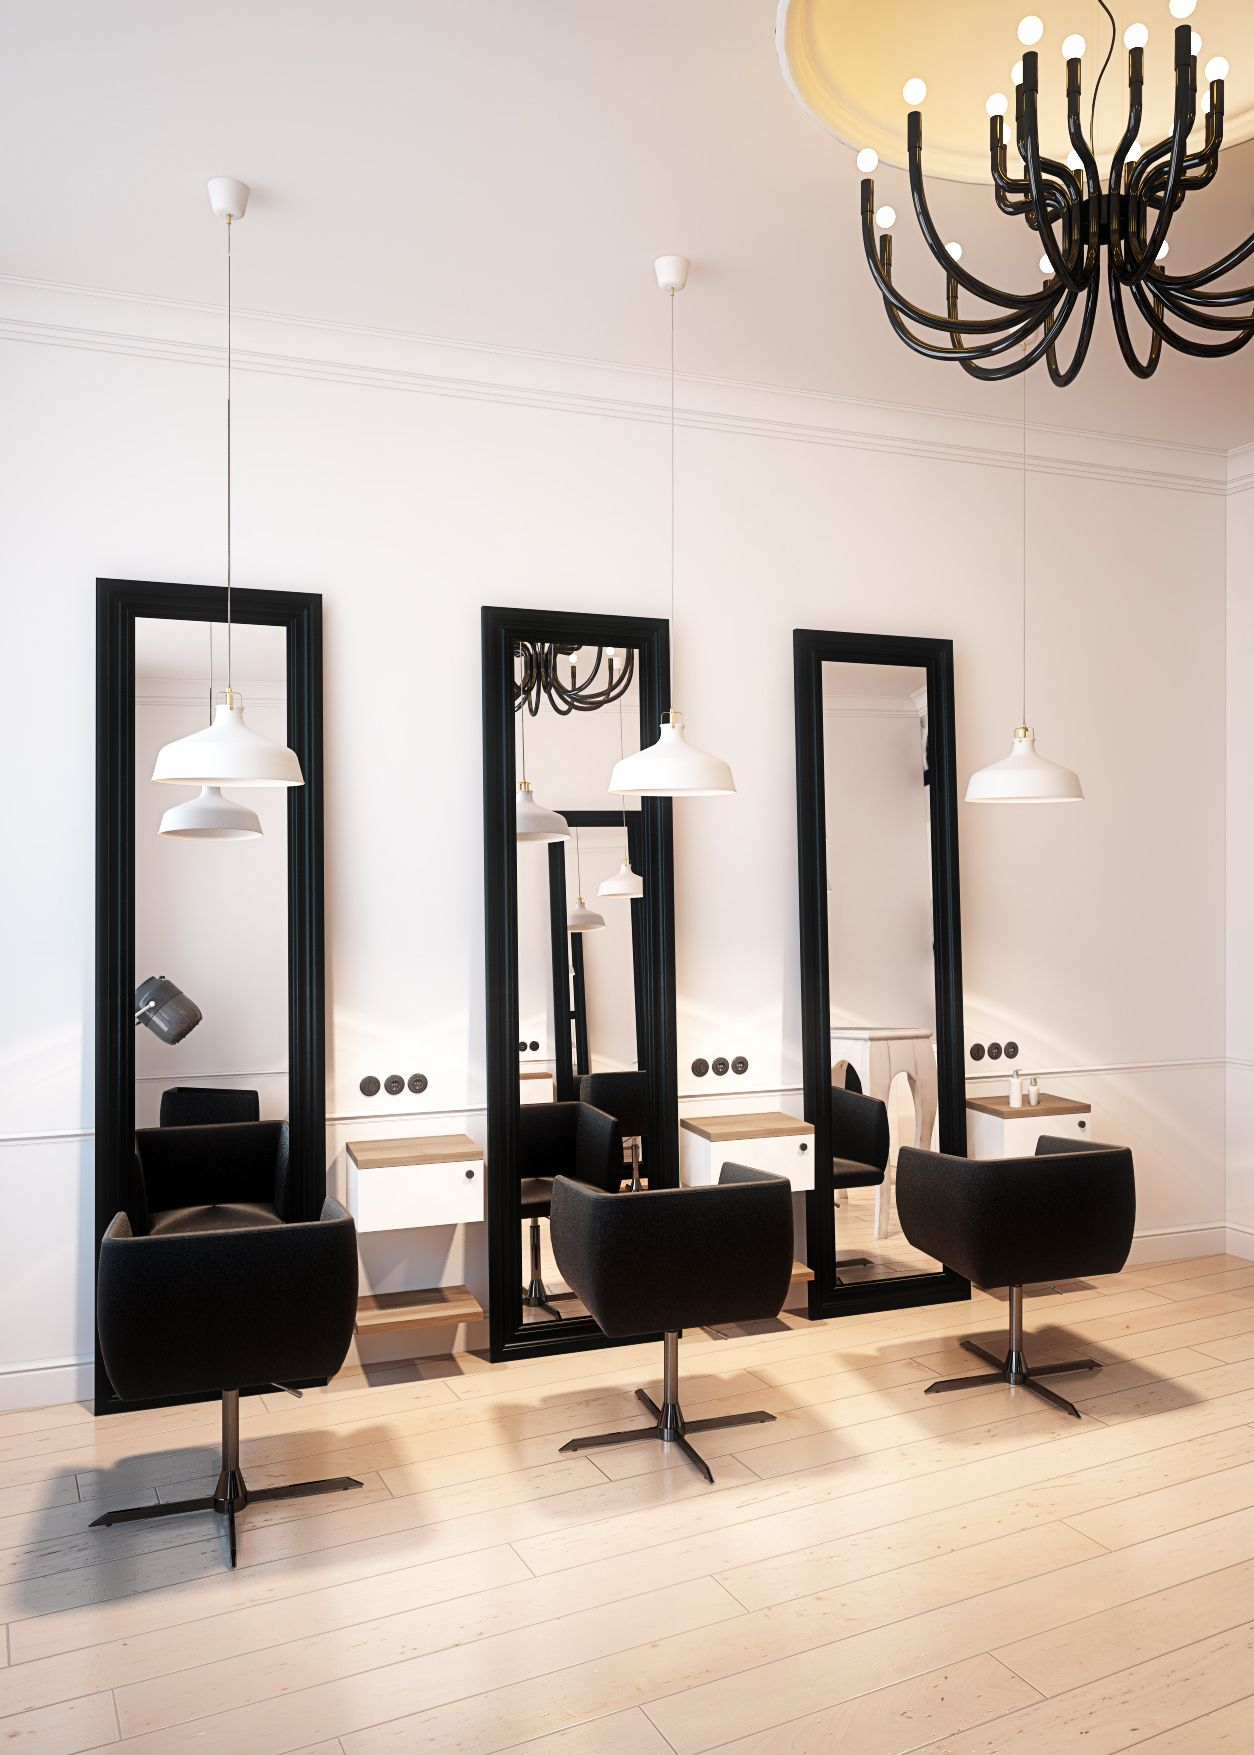 Hairdresser interior design in bytom poland archi group for Decoration interieur design salon